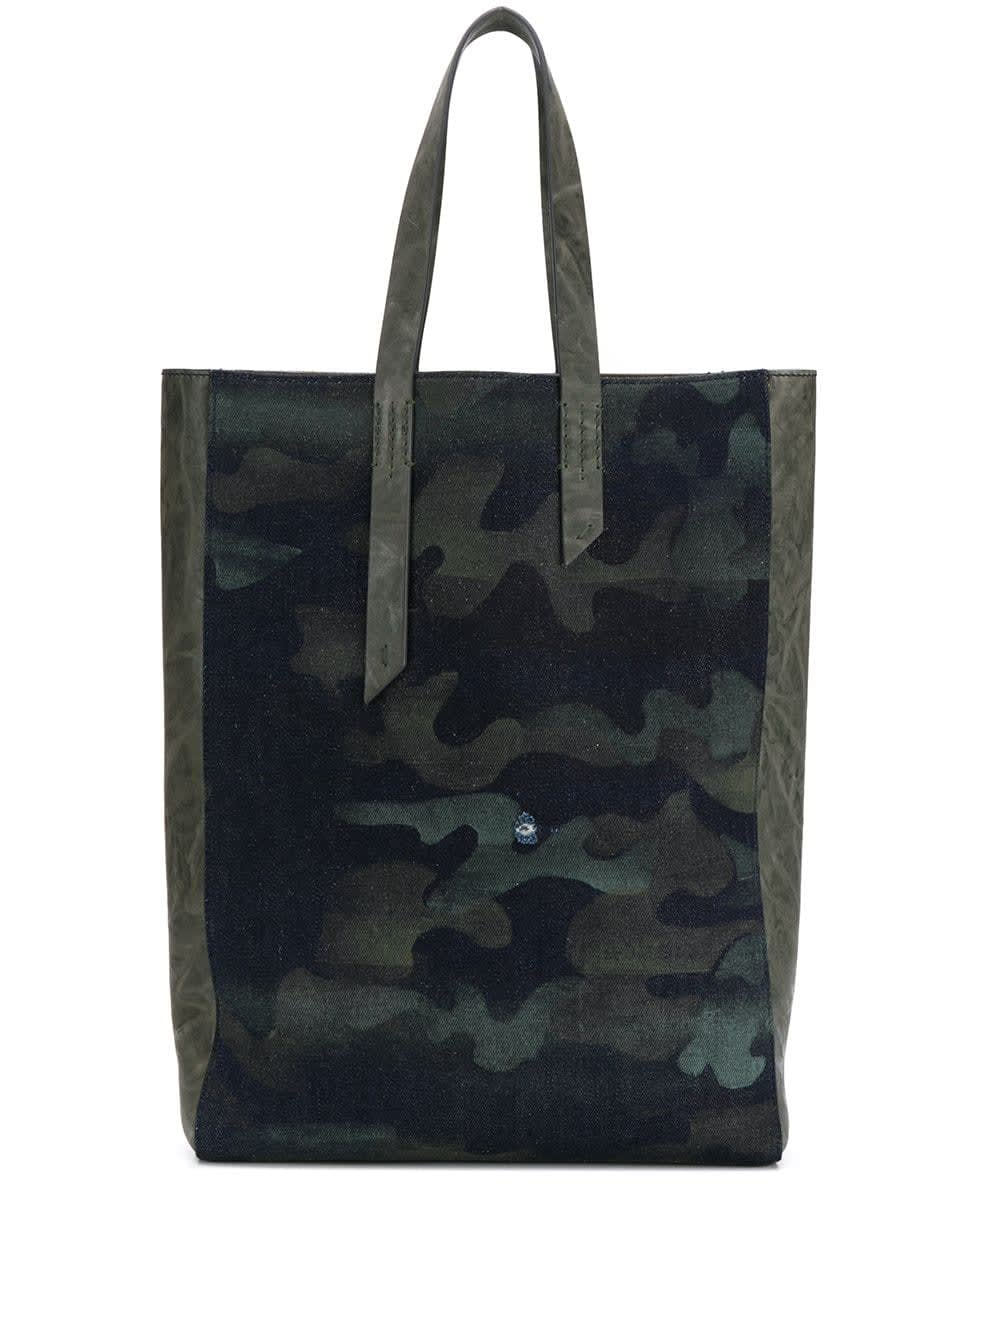 Mr & Mrs Italy DENIM CAMOUFLAGE TOTE BAG